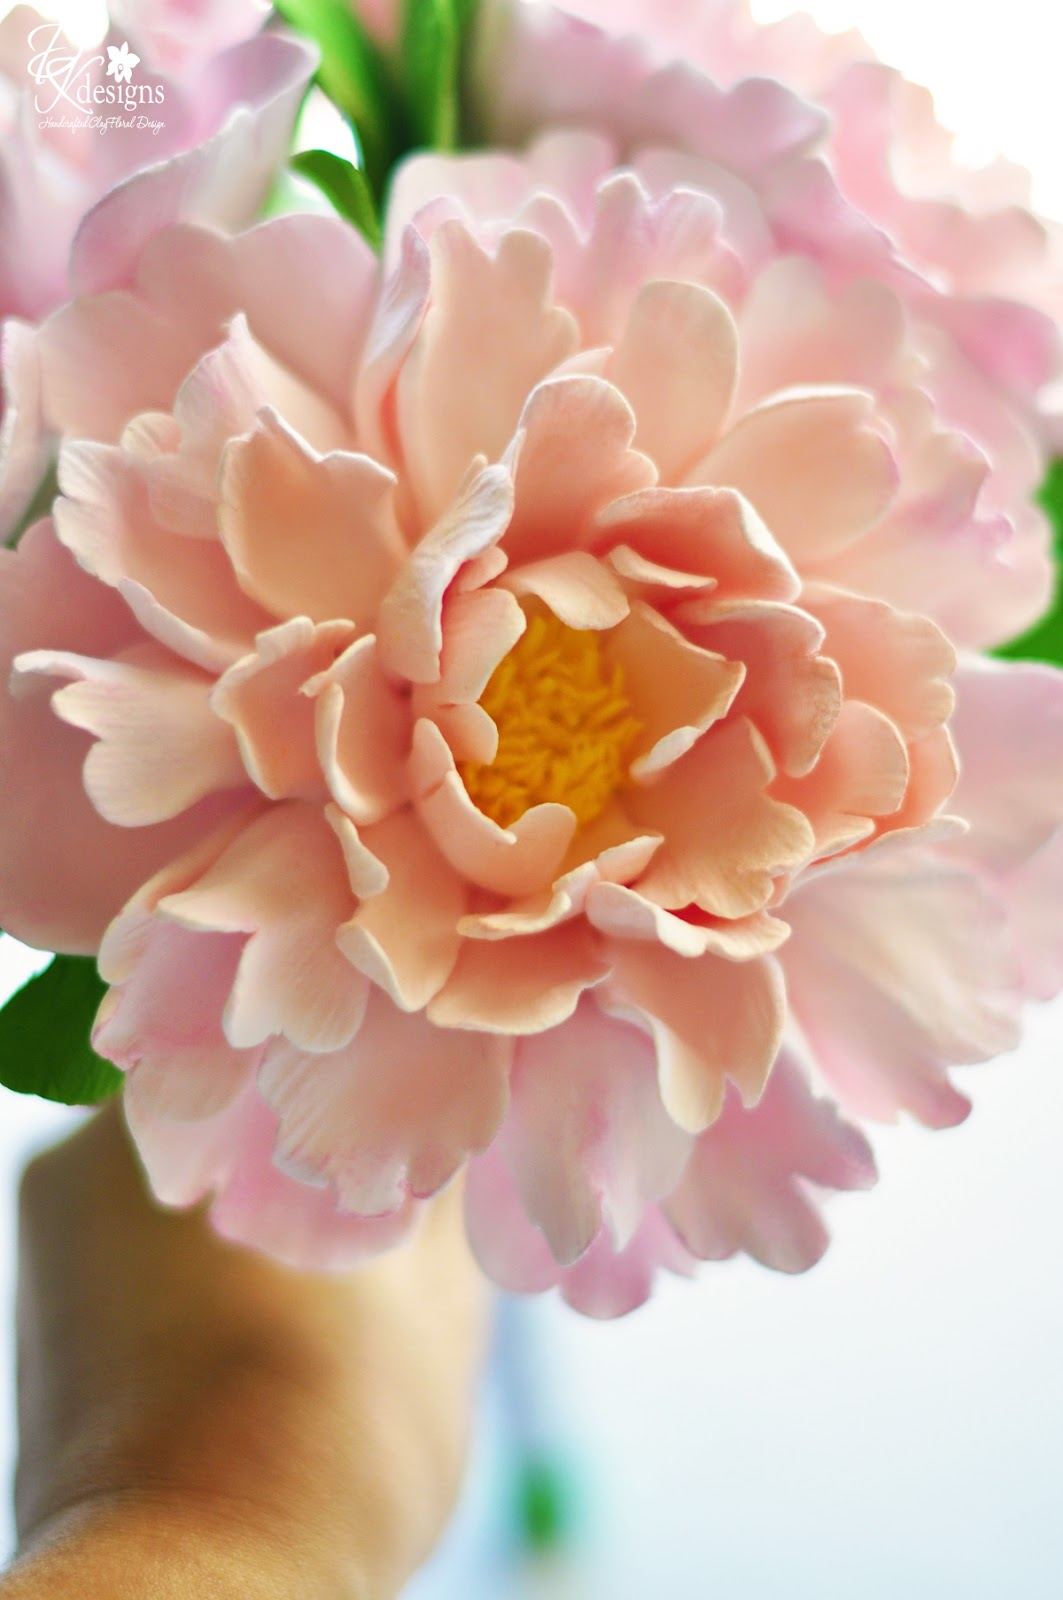 DK Designs: Peachy Pink Peony Bouquet